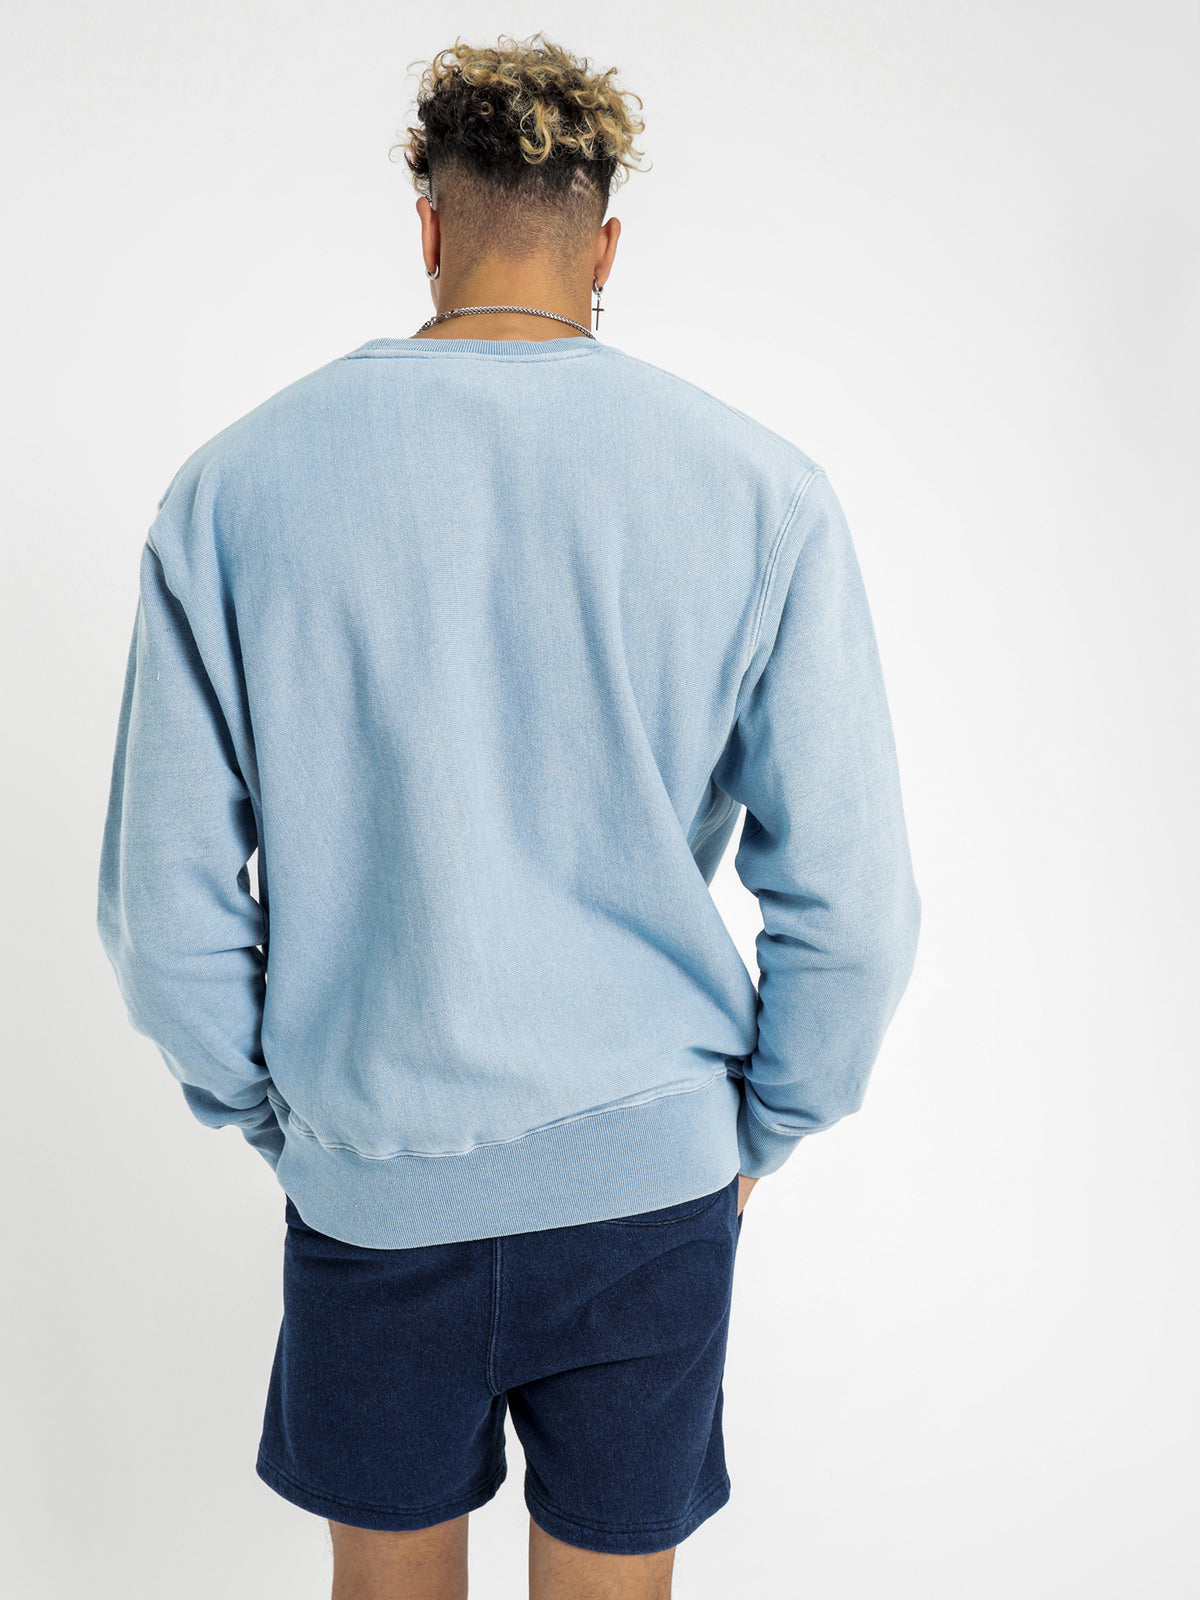 Reverse Weave Re:Bound Crew in Washed Blue